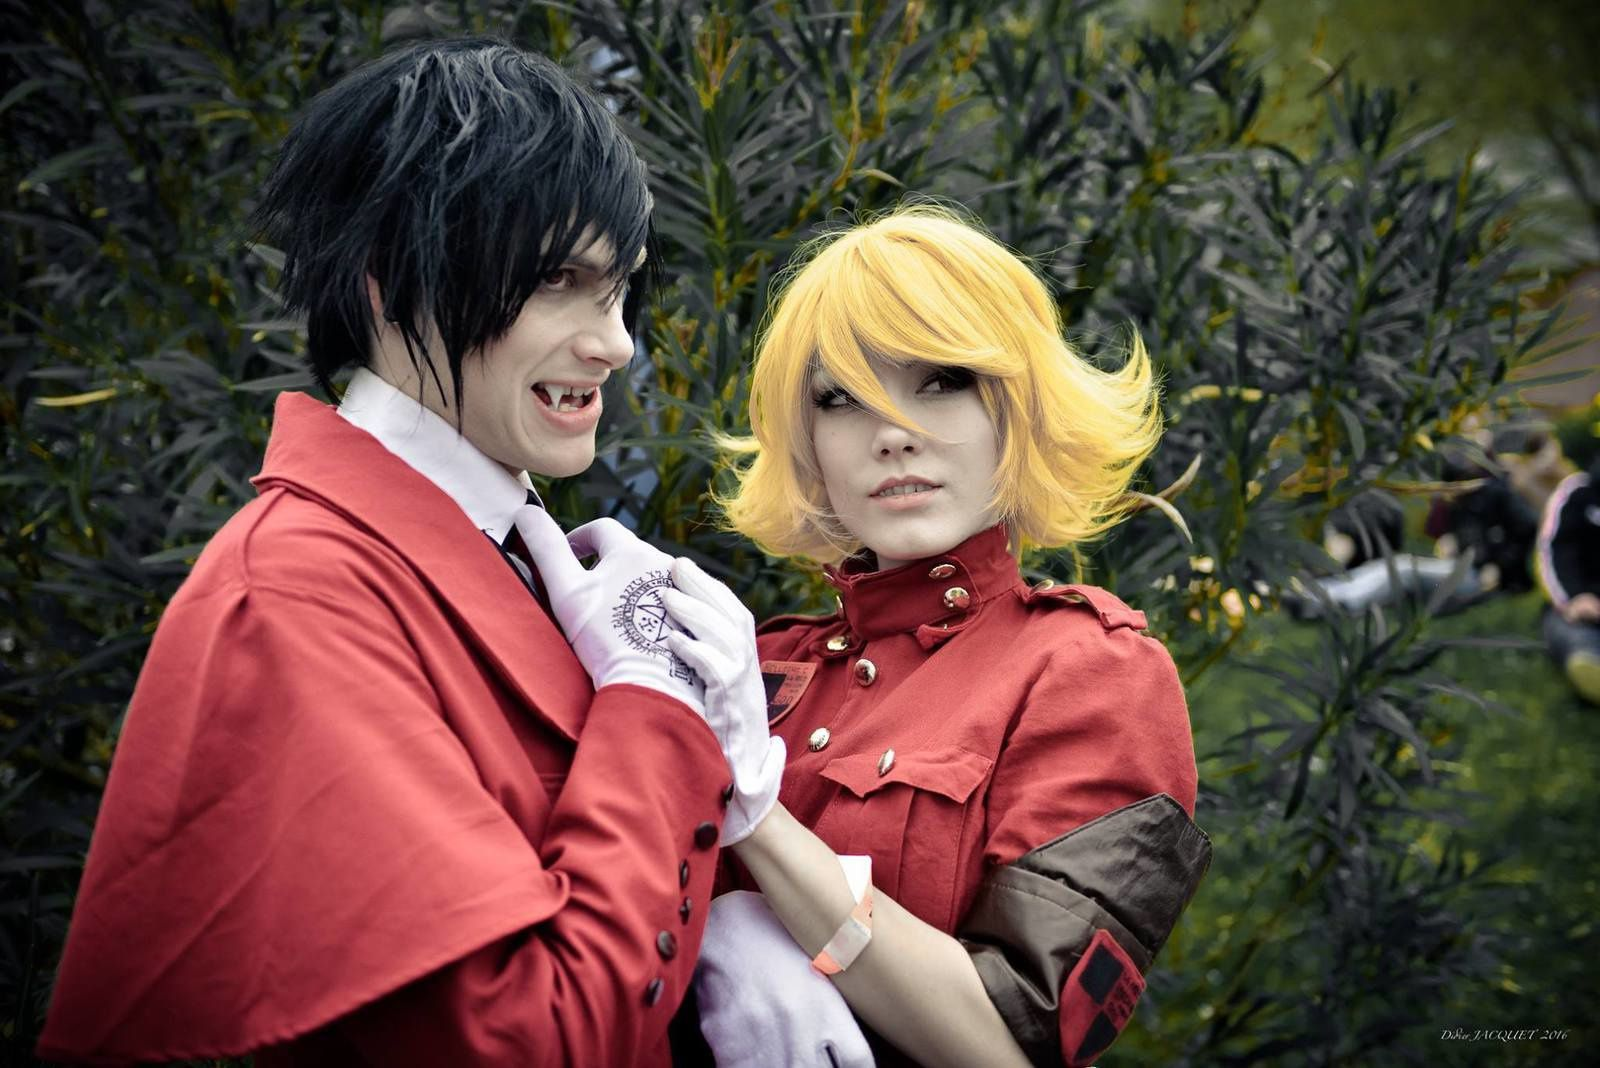 Parle-moi Cosplay #211,5 : Discordia Cosplay